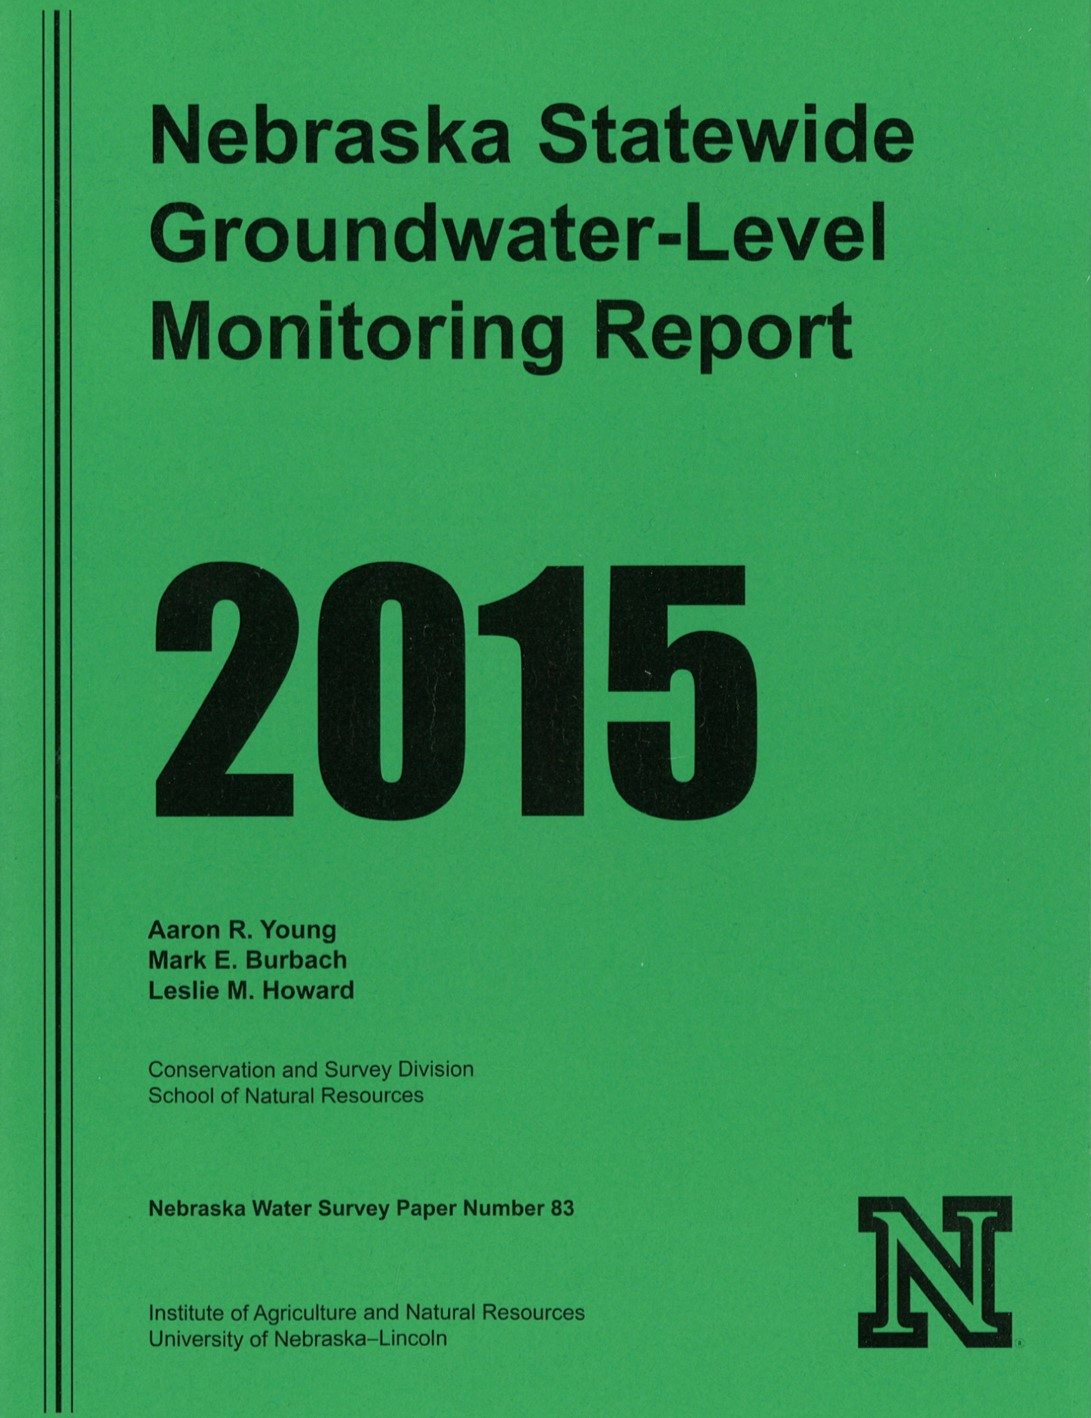 Report reveals rises in groundwater levels following multiple years of decline